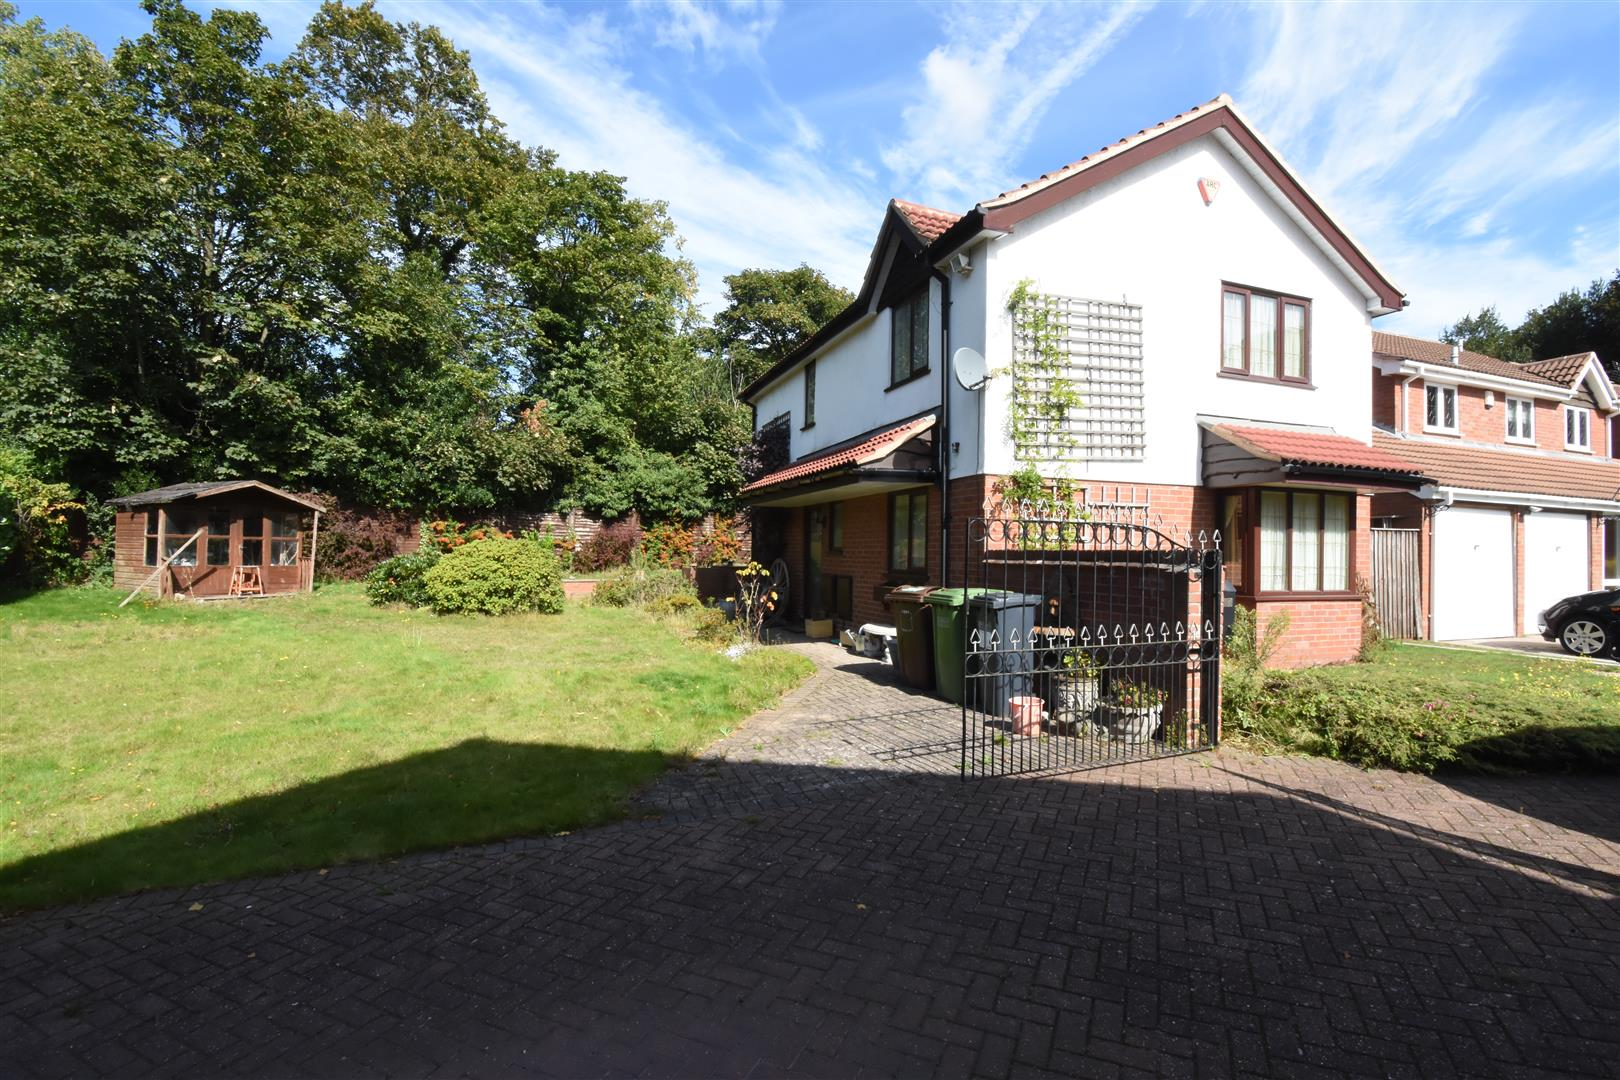 3 bed house for sale in Castle Hills Drive, Castle Bromwich, Birmingham - Property Image 1